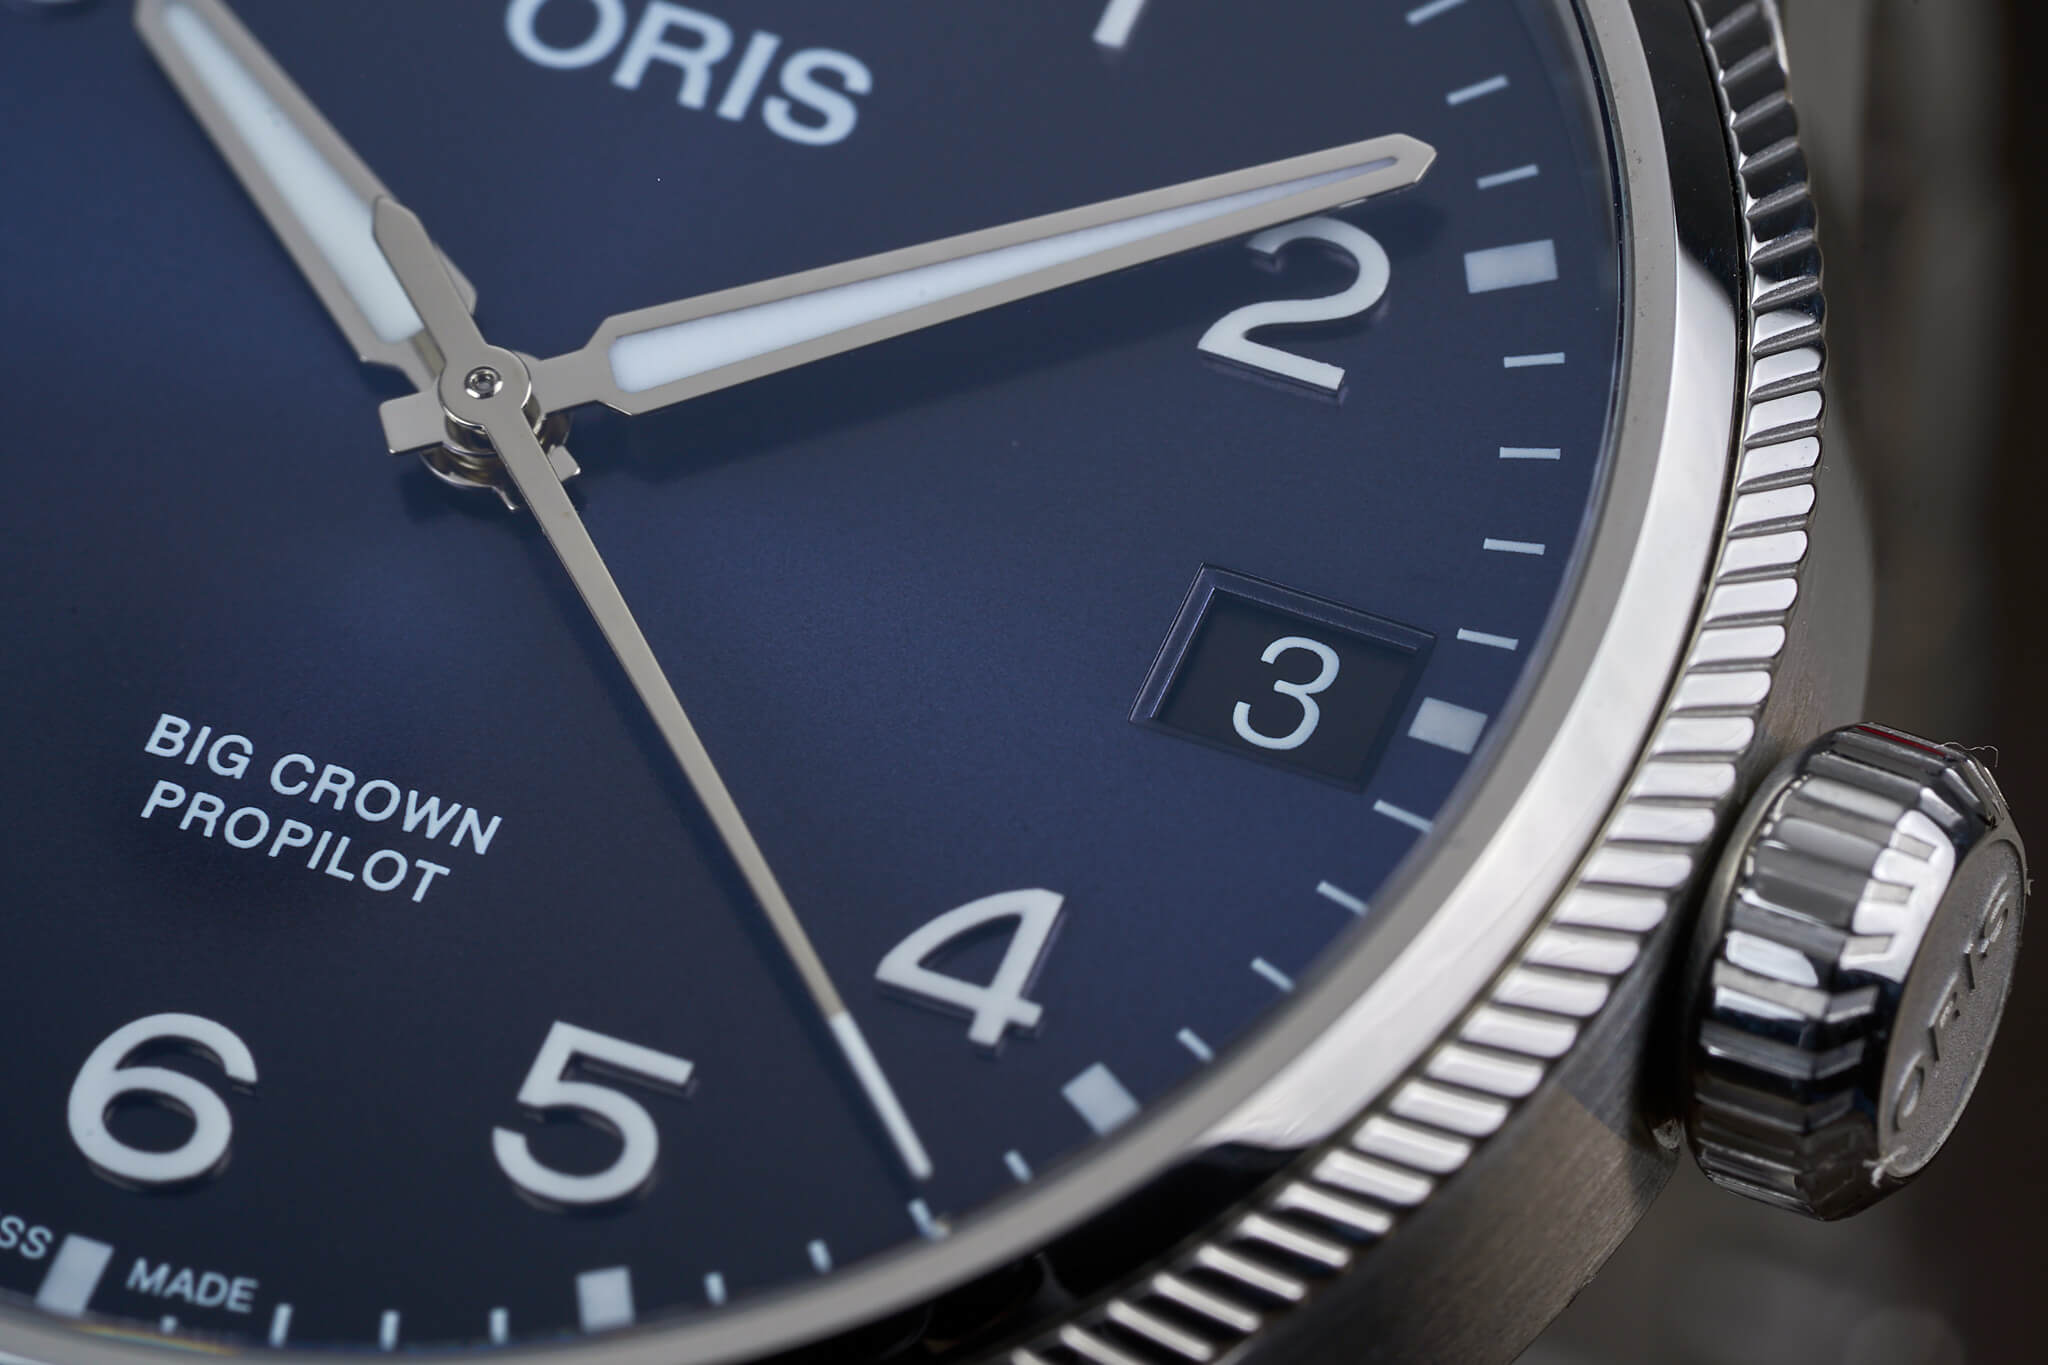 oris-big-crown-propilot-10